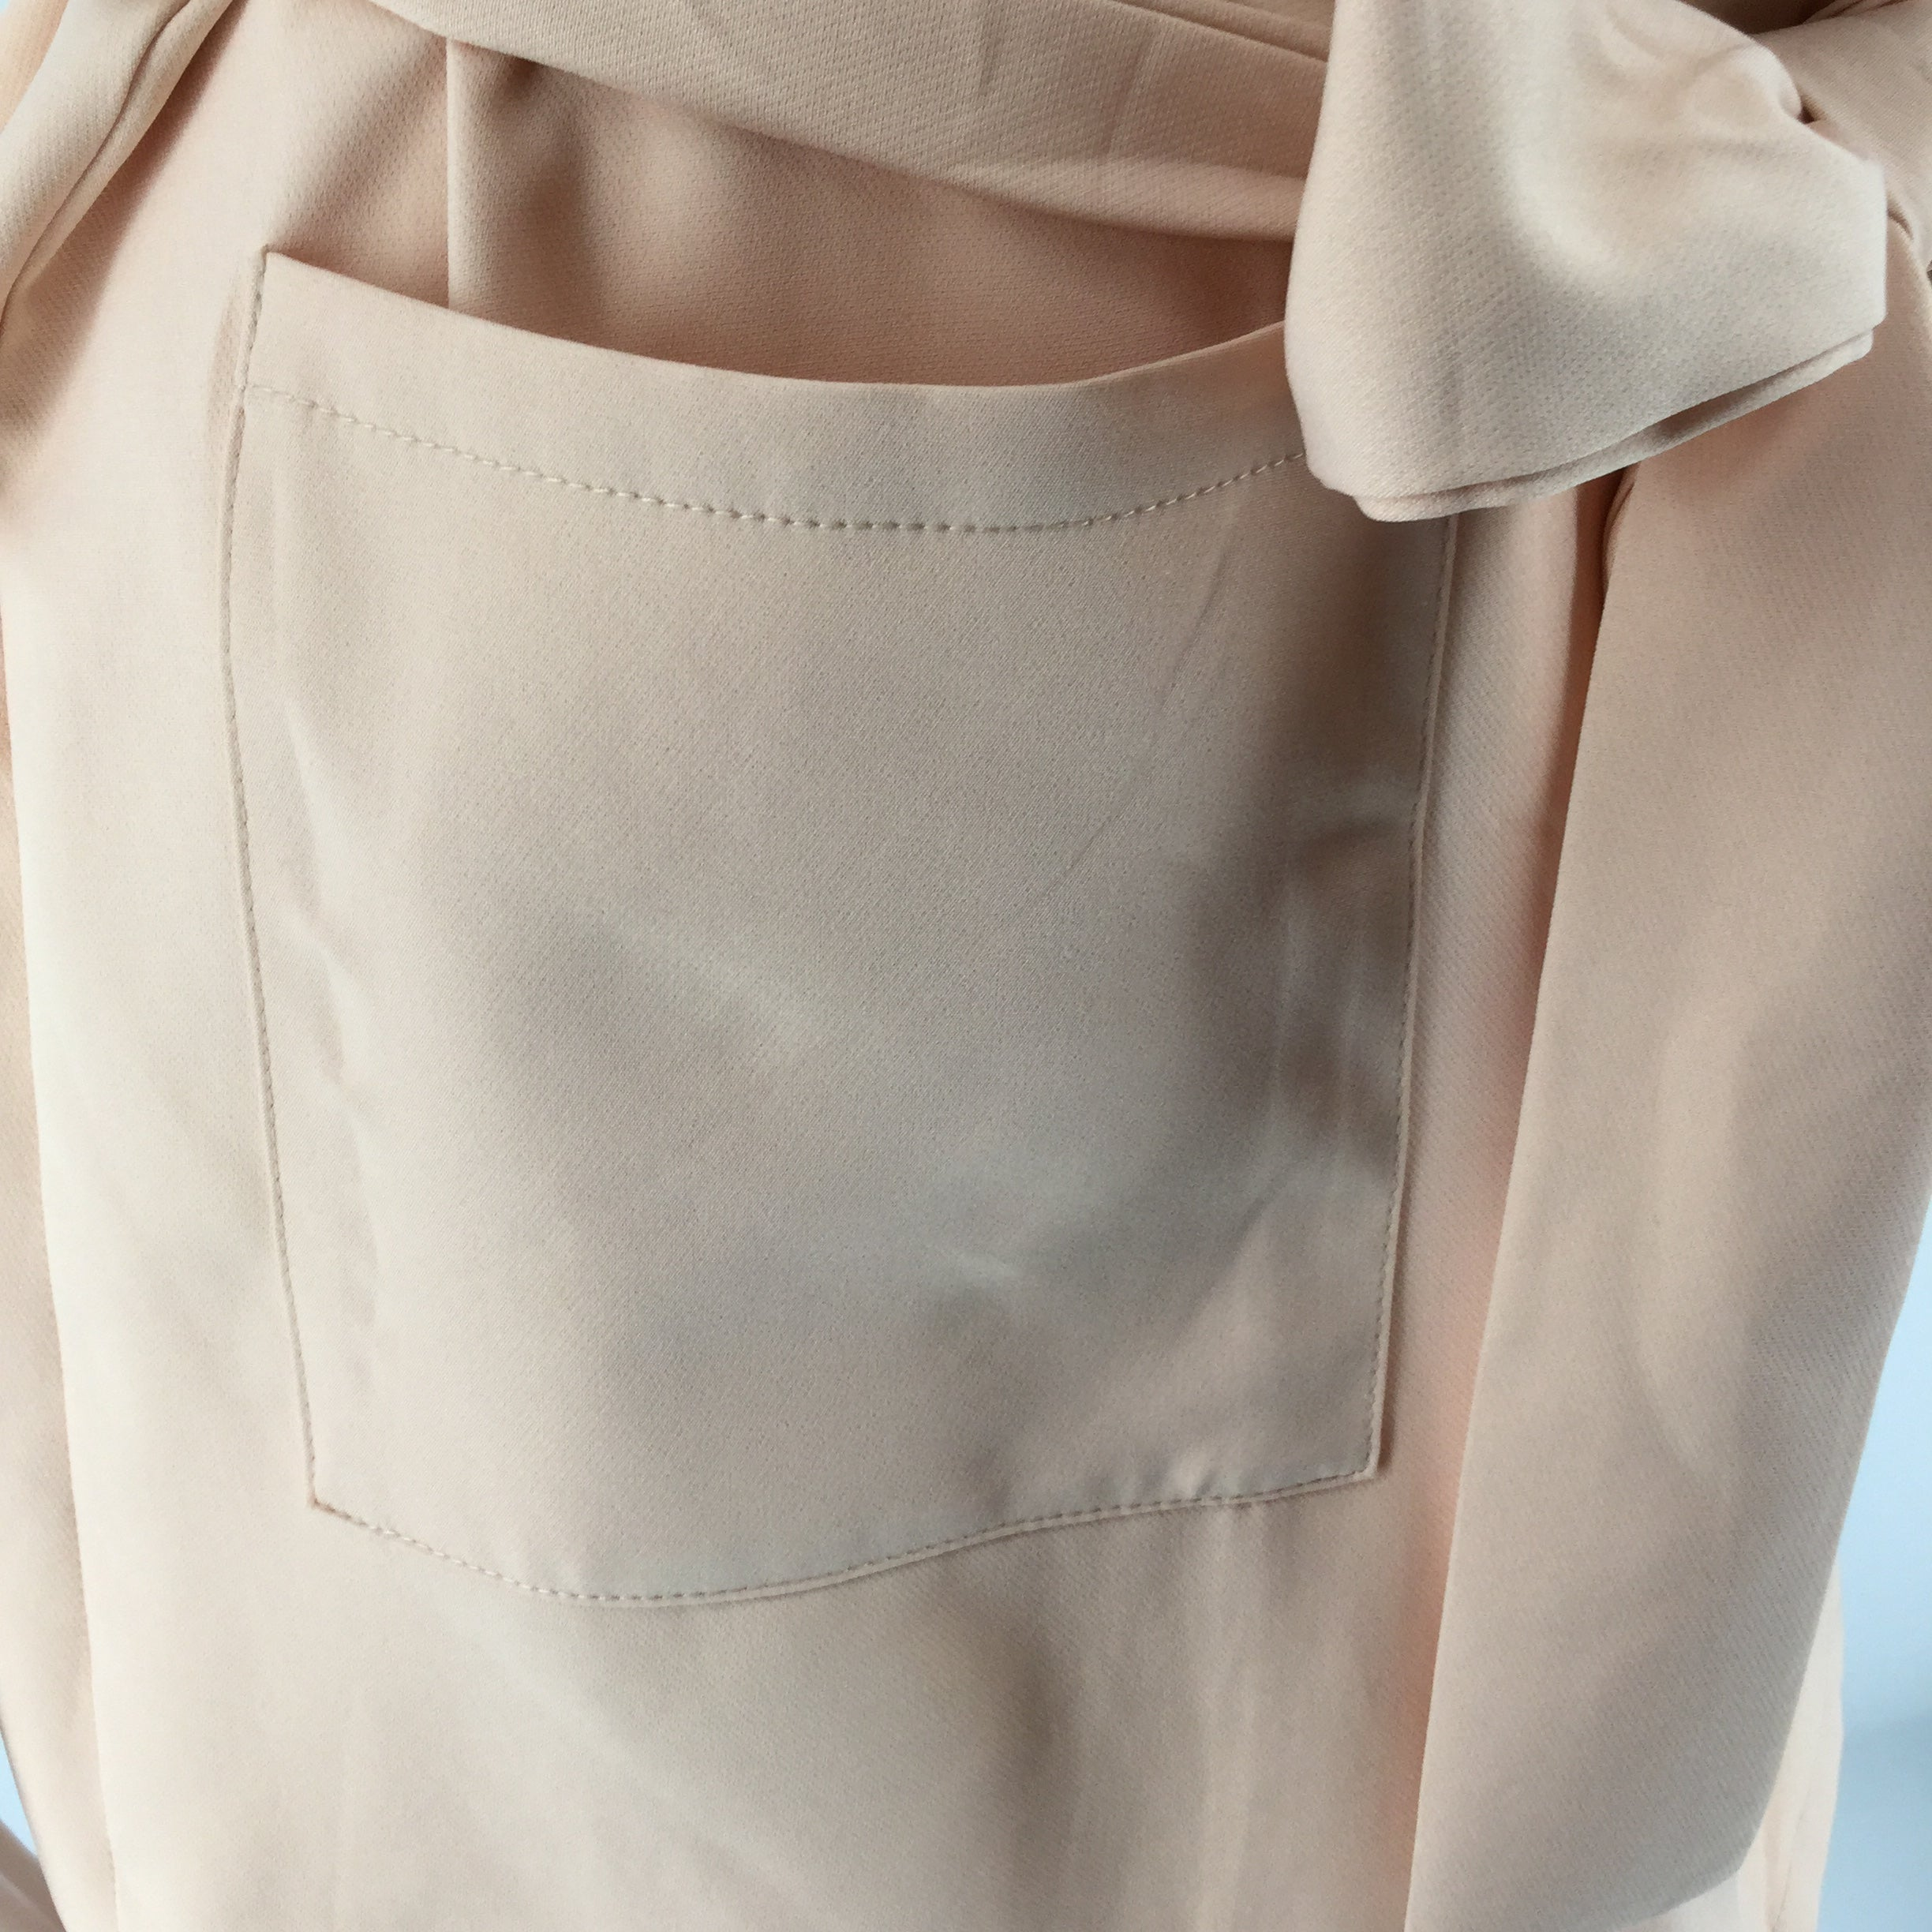 APPAREL,TOPS - SHEIN PEACH COLORED VEST WITH POCKETS AND TIE AT THE WAIST. GREAT SPRING COLOR AND STYLE.